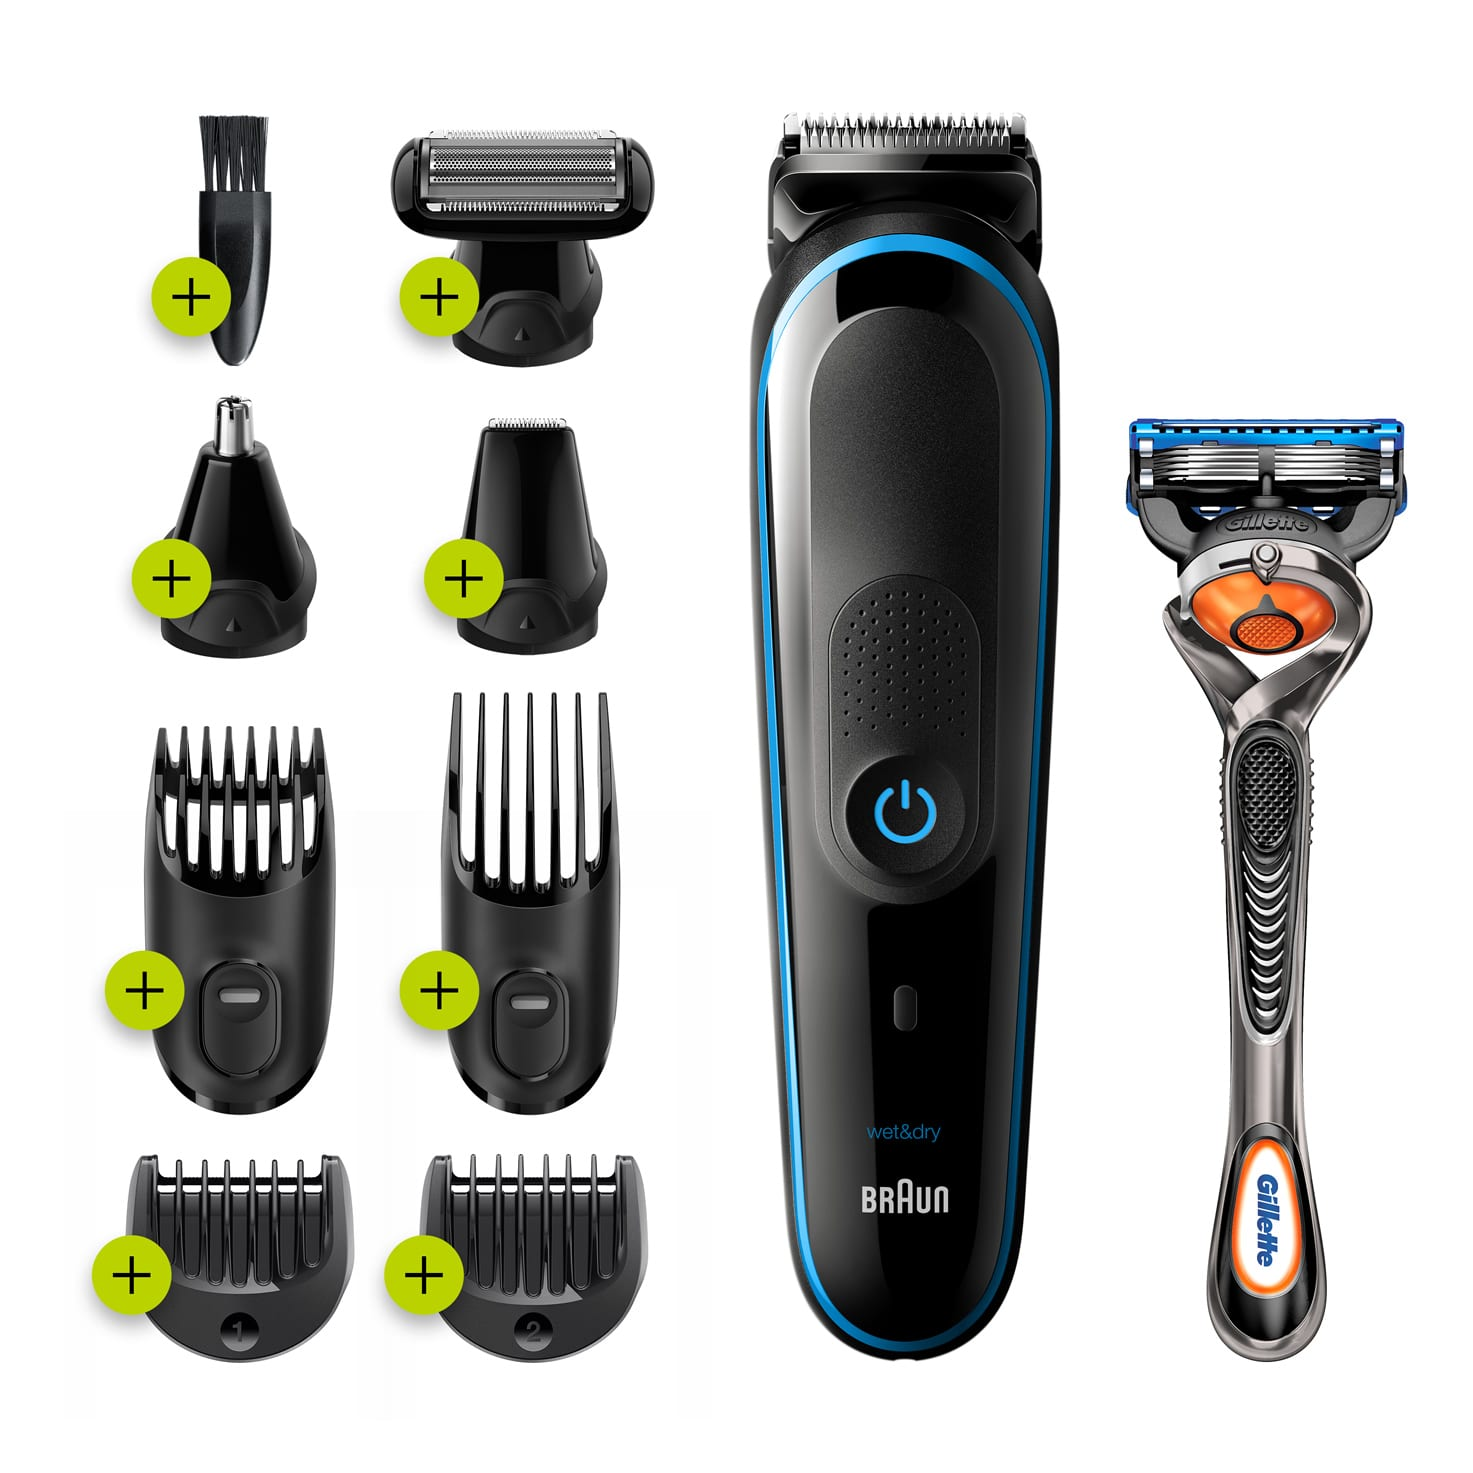 Braun All in one trimmer 5 MGK5280